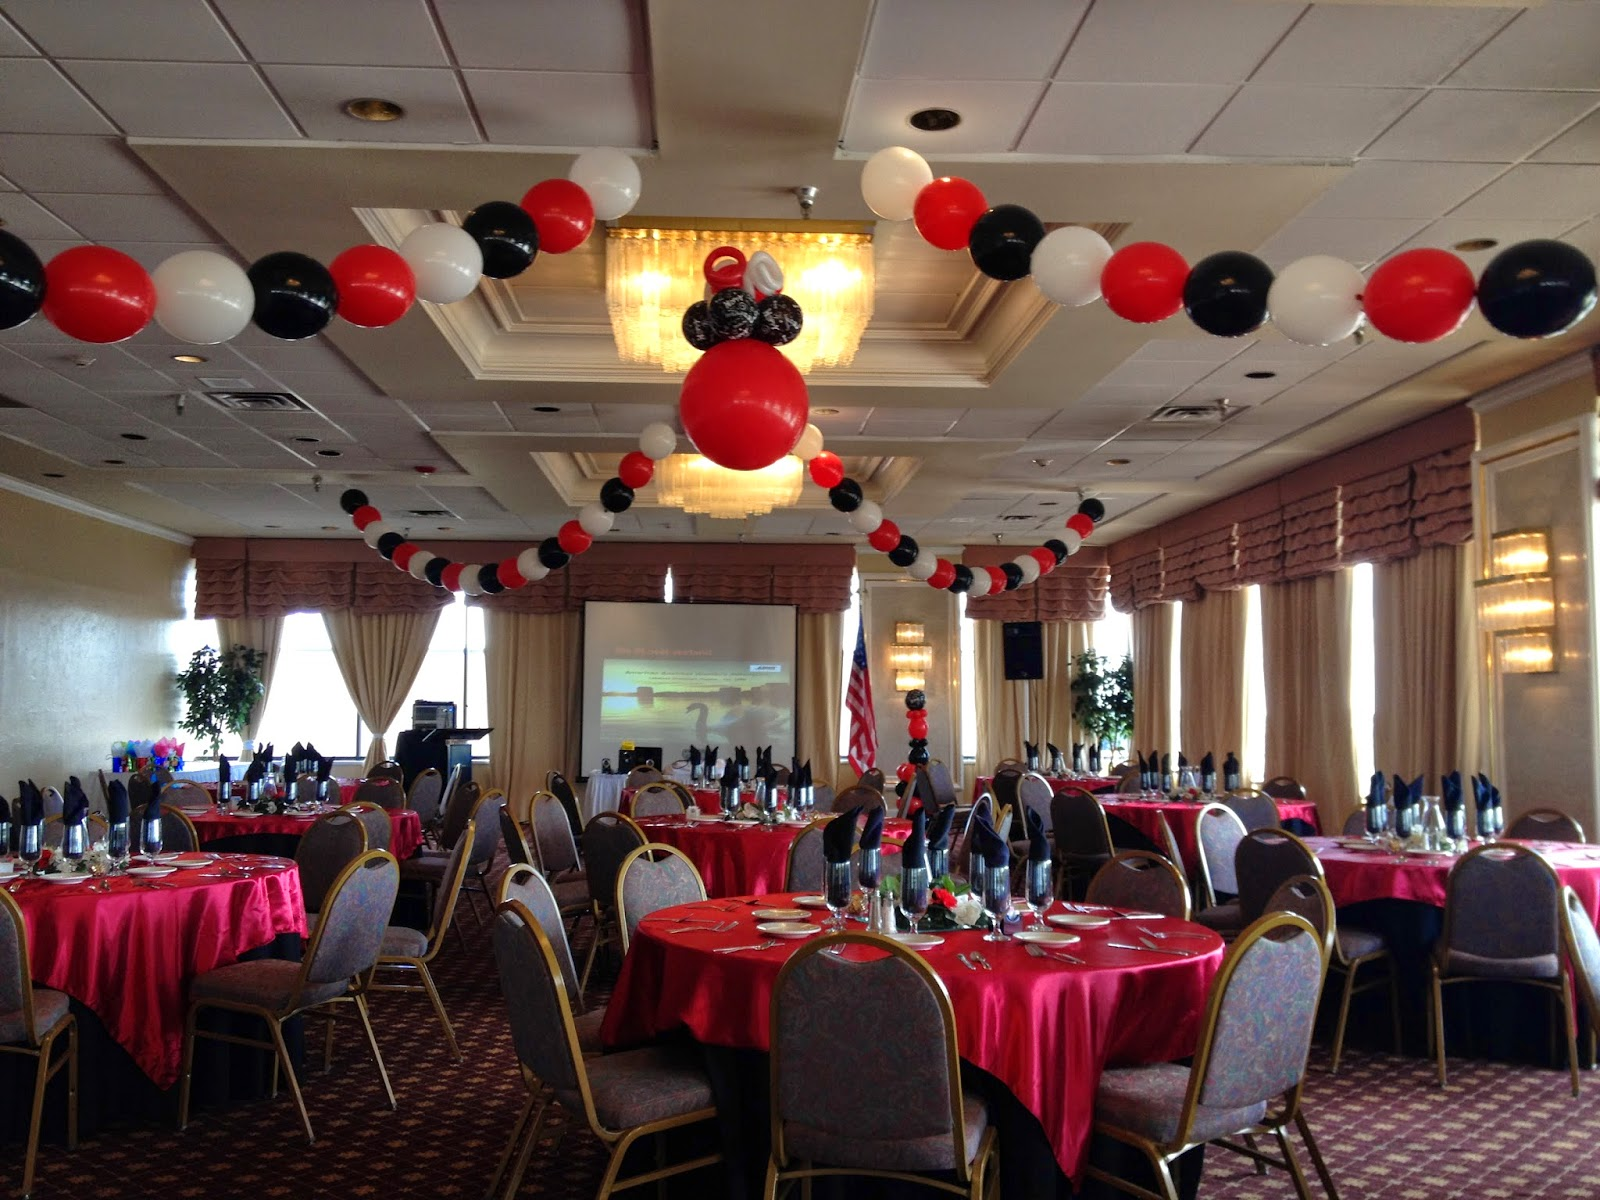 Party people event decorating company abwa downtown for Balloon decoration company